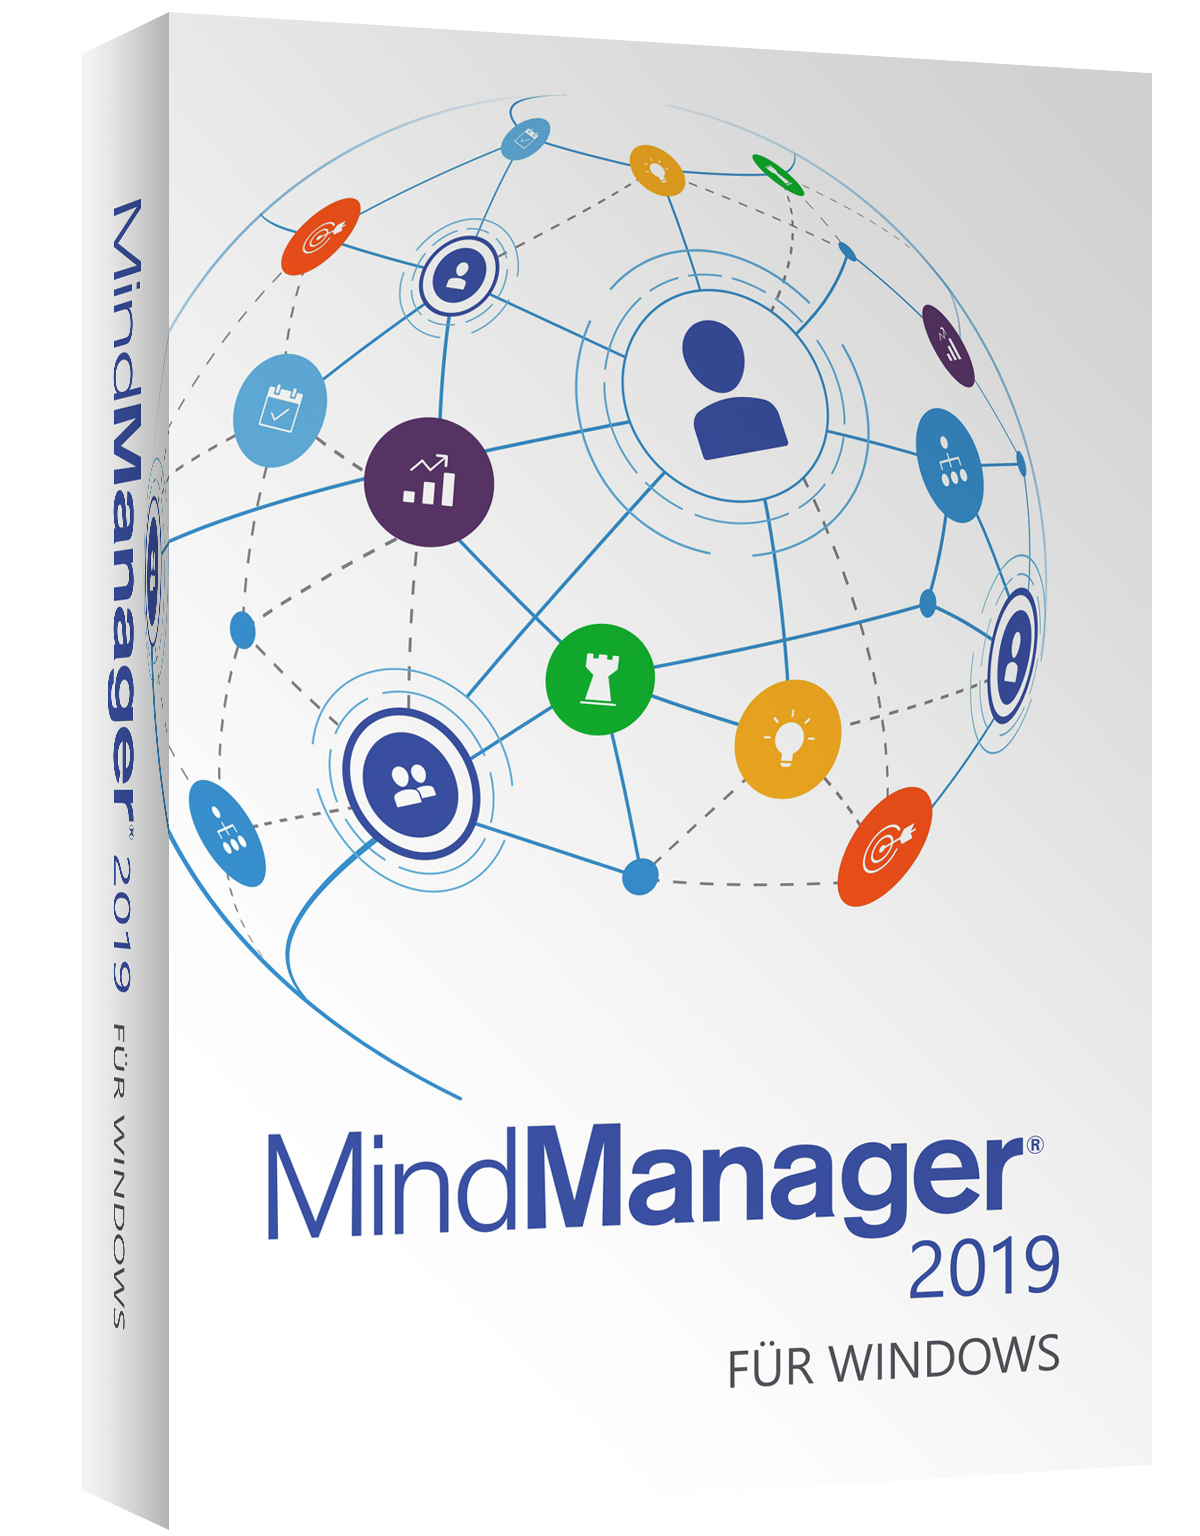 MindManager 2019 für Windows - Box